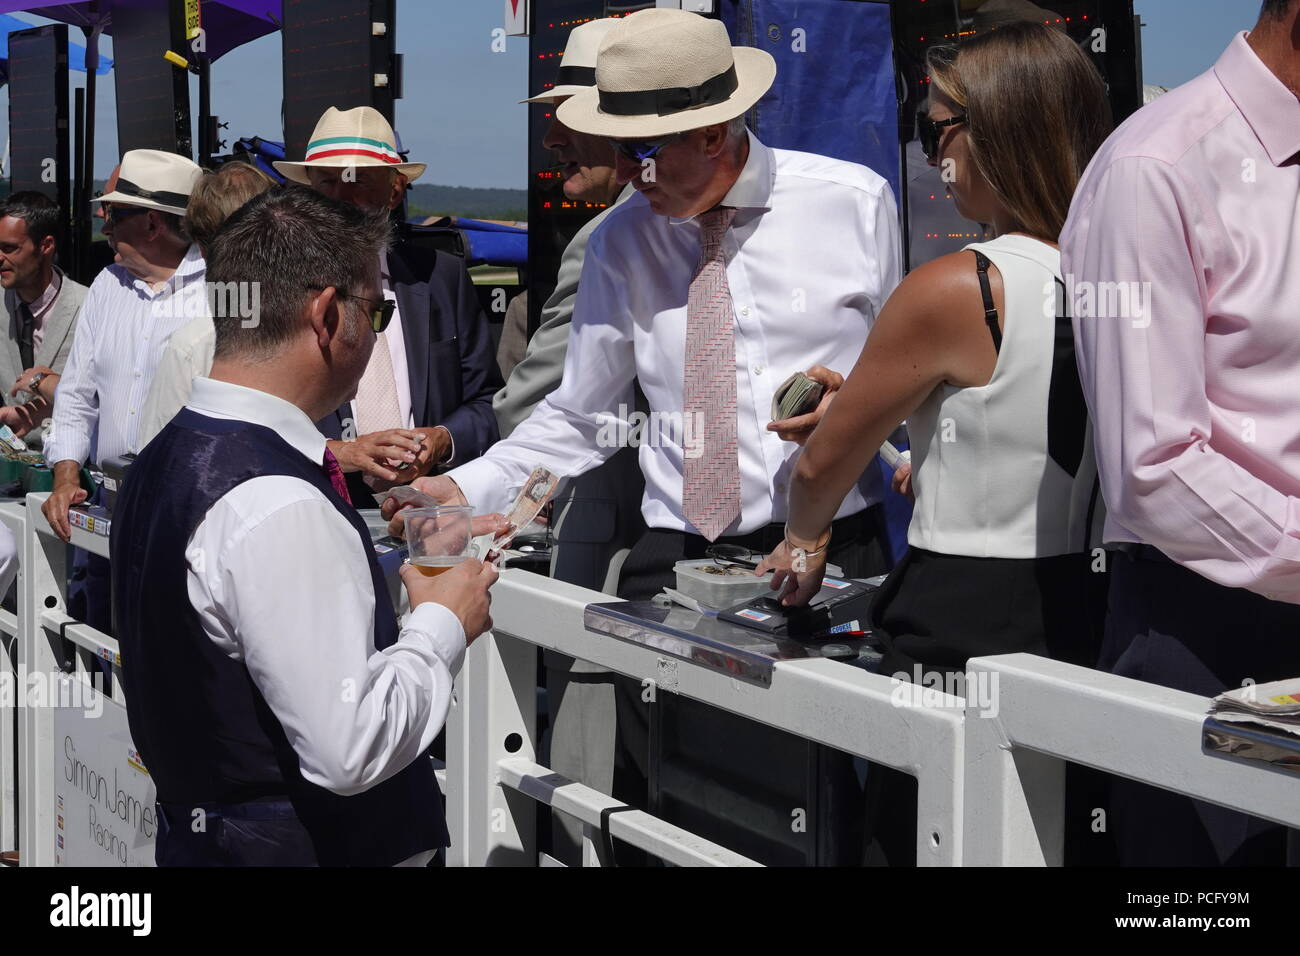 Goodwood Racecourse, West Sussex, UK. 2nd August,  2018   2nd August,  2018   Goodwood Racecourse, West Sussex, UK  Atmosphere scenes from Ladies Day on the sunny Sussex Downs at Glorious Goodwood day} three. Credit: Motofoto/Alamy Live News - Stock Image